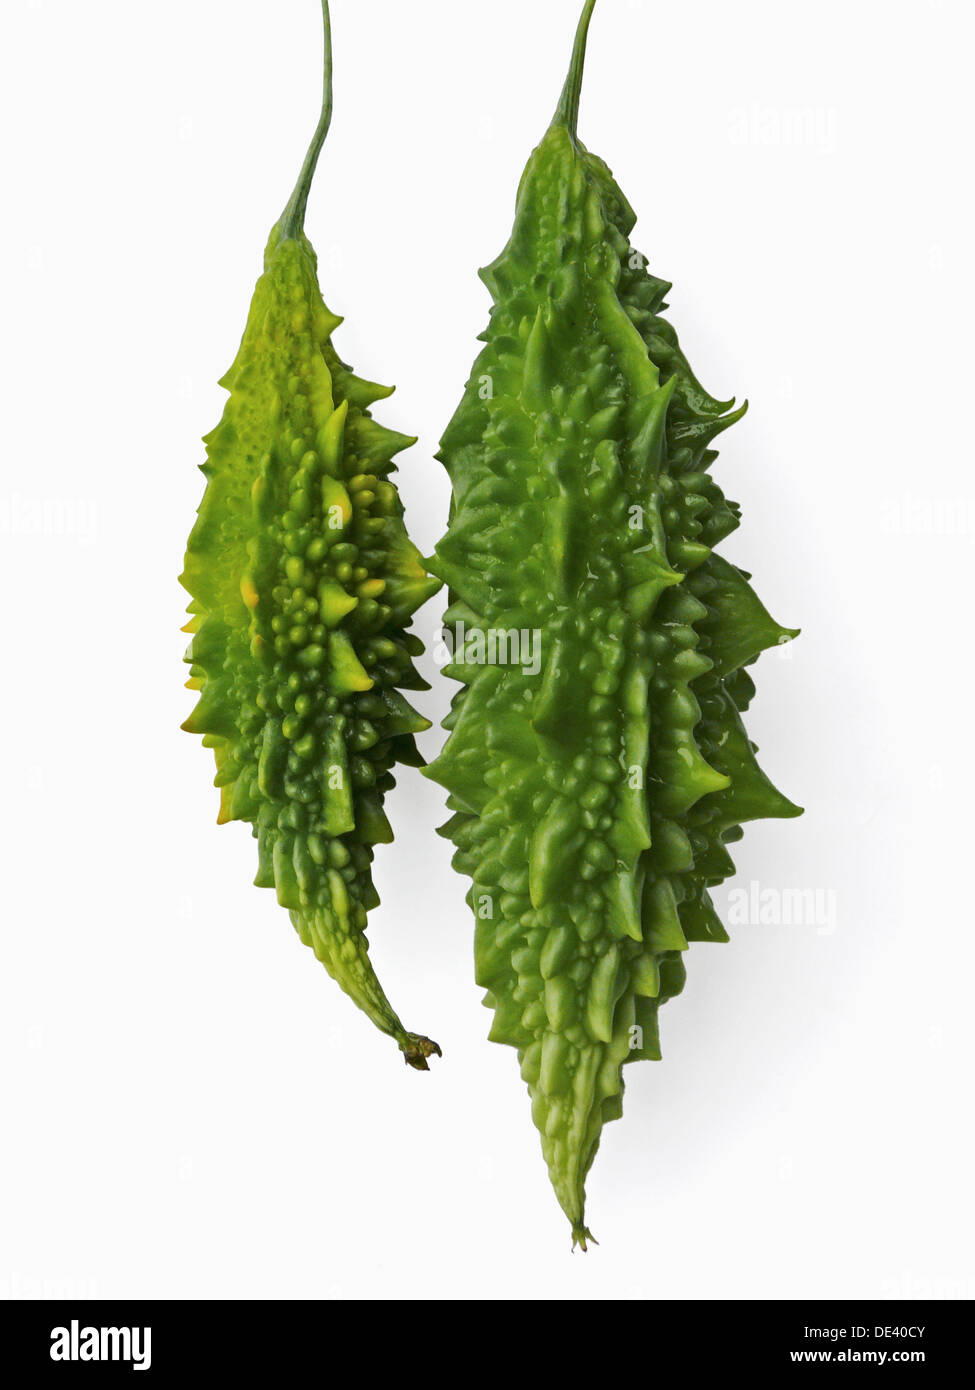 Bitter Melon (known also as: Karela, Bitter Gourd, Balsam Pear, Balsam apple, squirting cucumber) Latin name: Momordica - Stock Image